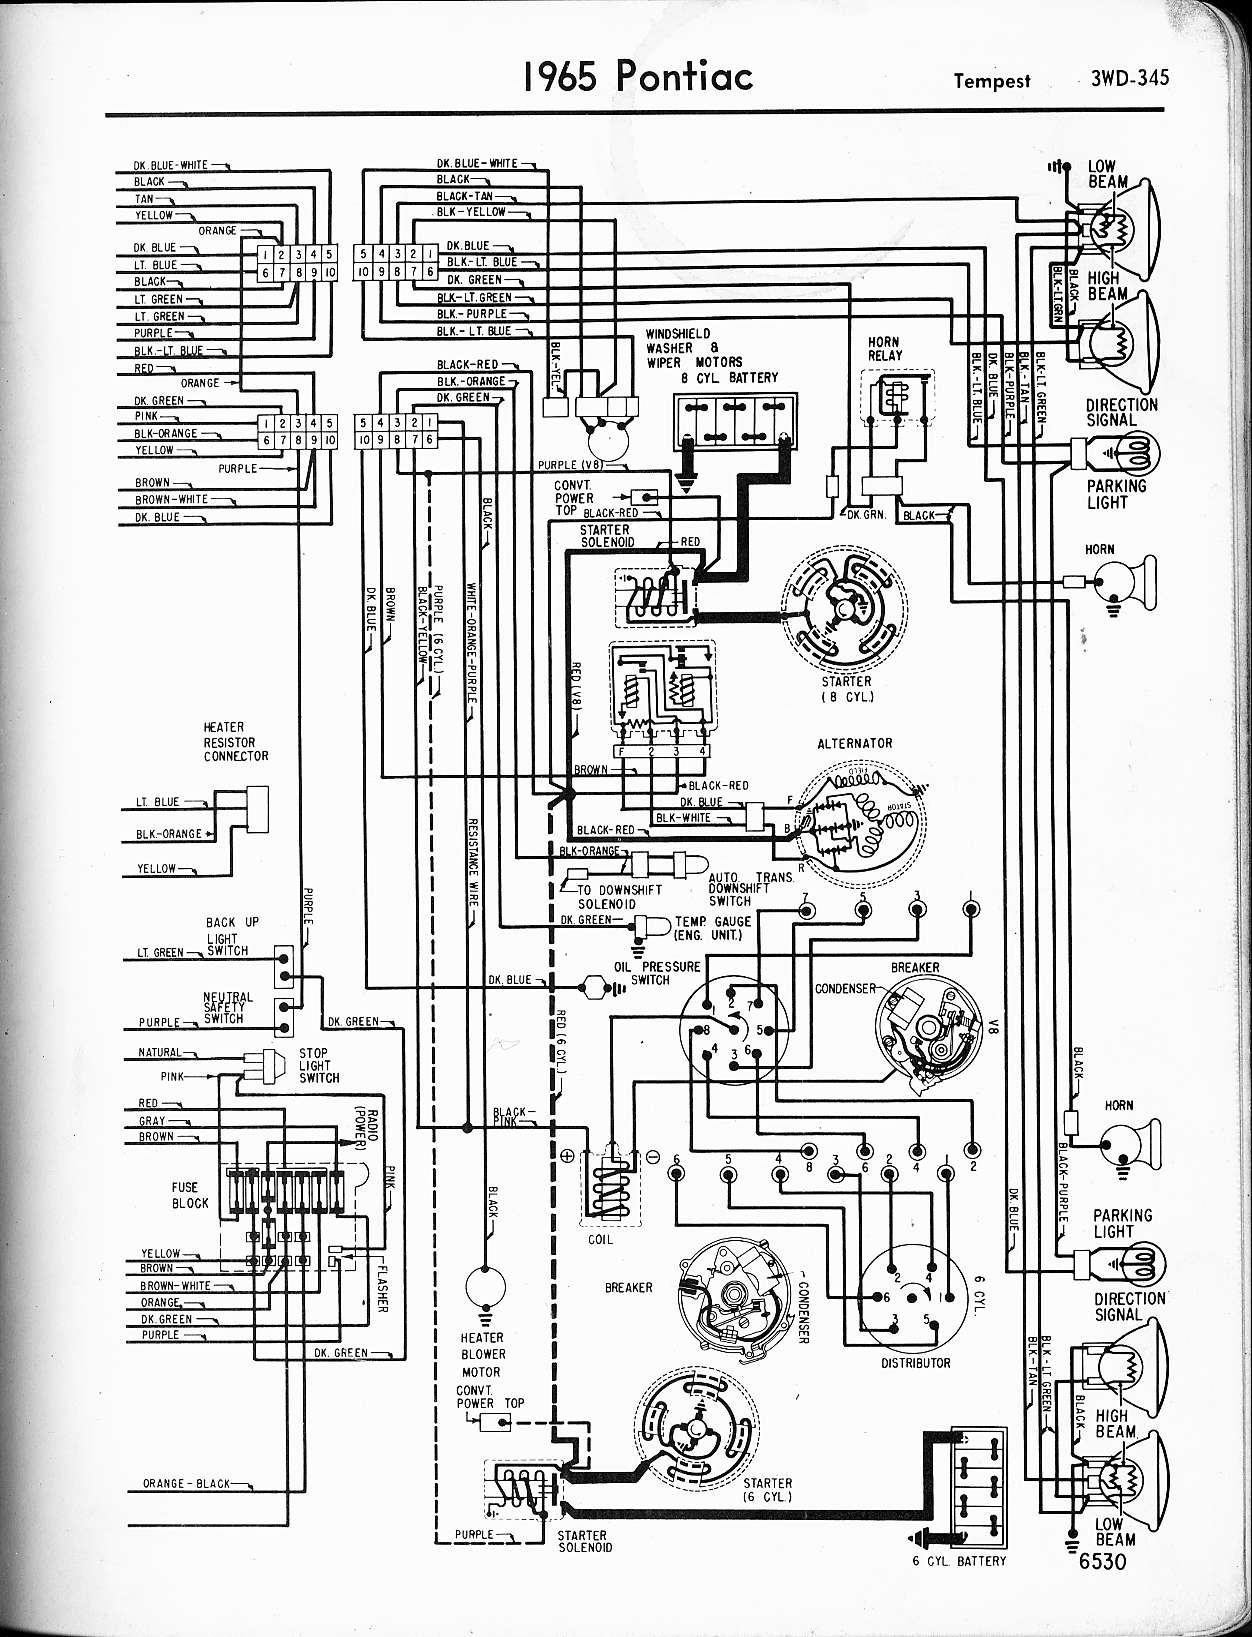 wiring diagram for a 2004 pontiac gto html with Index on 1262185 Power Steering Pump Outputs Gto F Body Corvette Cts V Truck Etc likewise Pontiac Colors 2013 together with 12v Wiring Diagram topic19145 together with 2006 Pontiac Grand Prix Fuse Box further 2004 Jeep Wrangler Fuse Box Diagram.